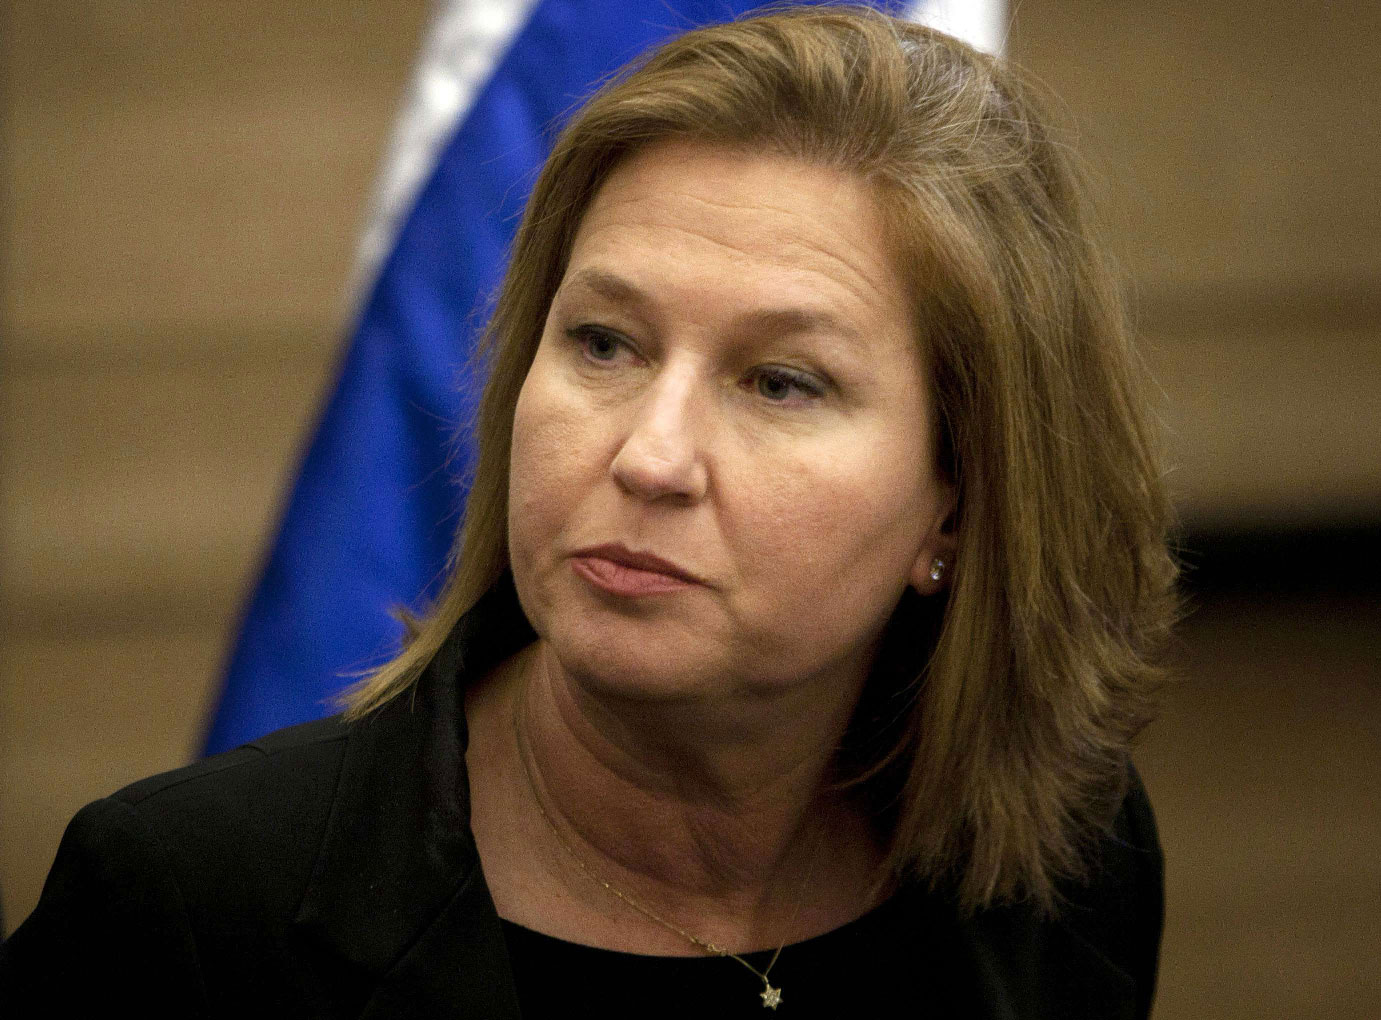 In this Wednesday, Nov. 30, 2011 file photo, former Israeli Foreign Minister Tzipi Livni attends a news conference at the Knesset, Israel's parliament, in Jerusalem.